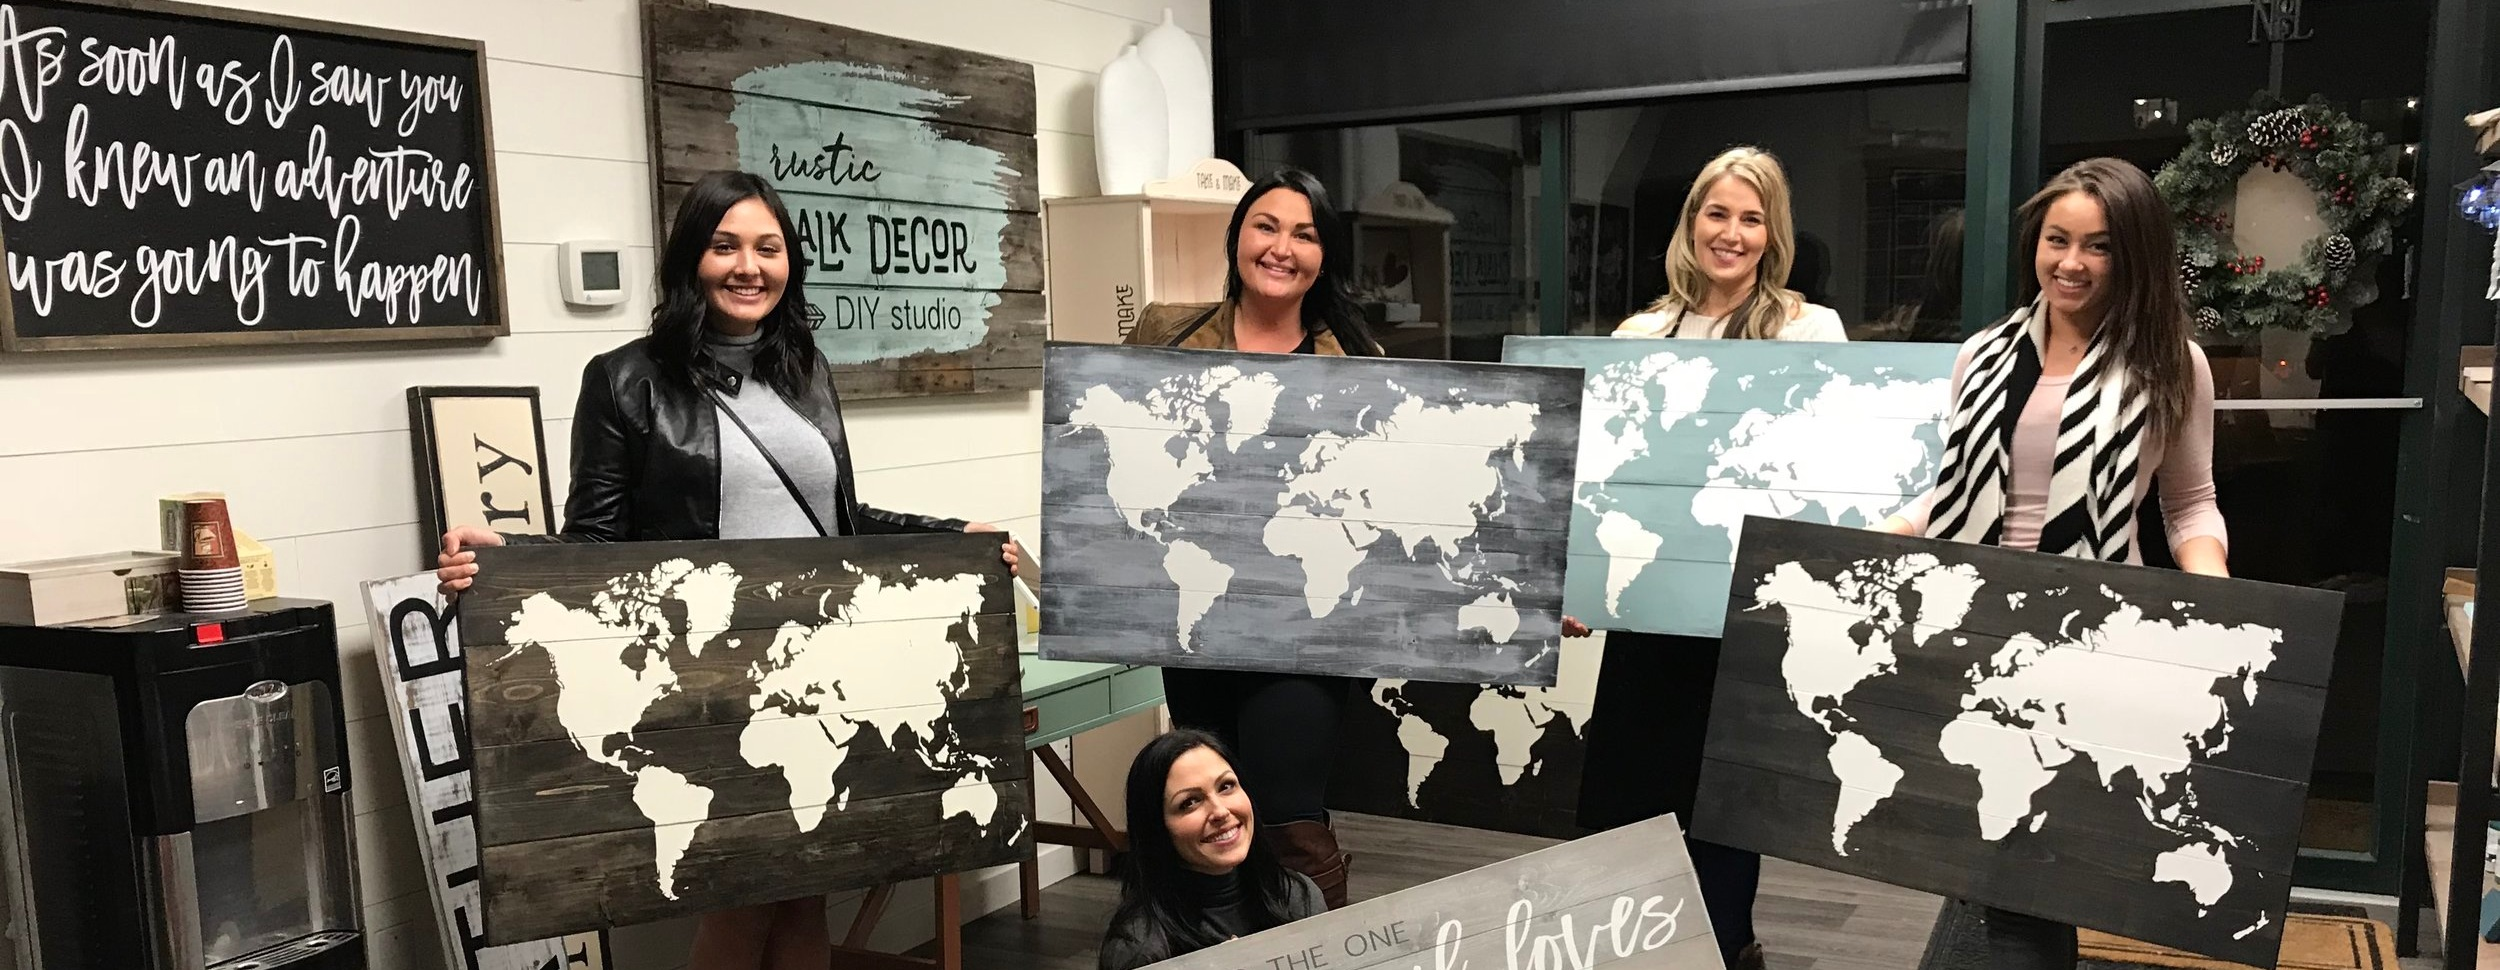 rustic sign painting kelowna world map